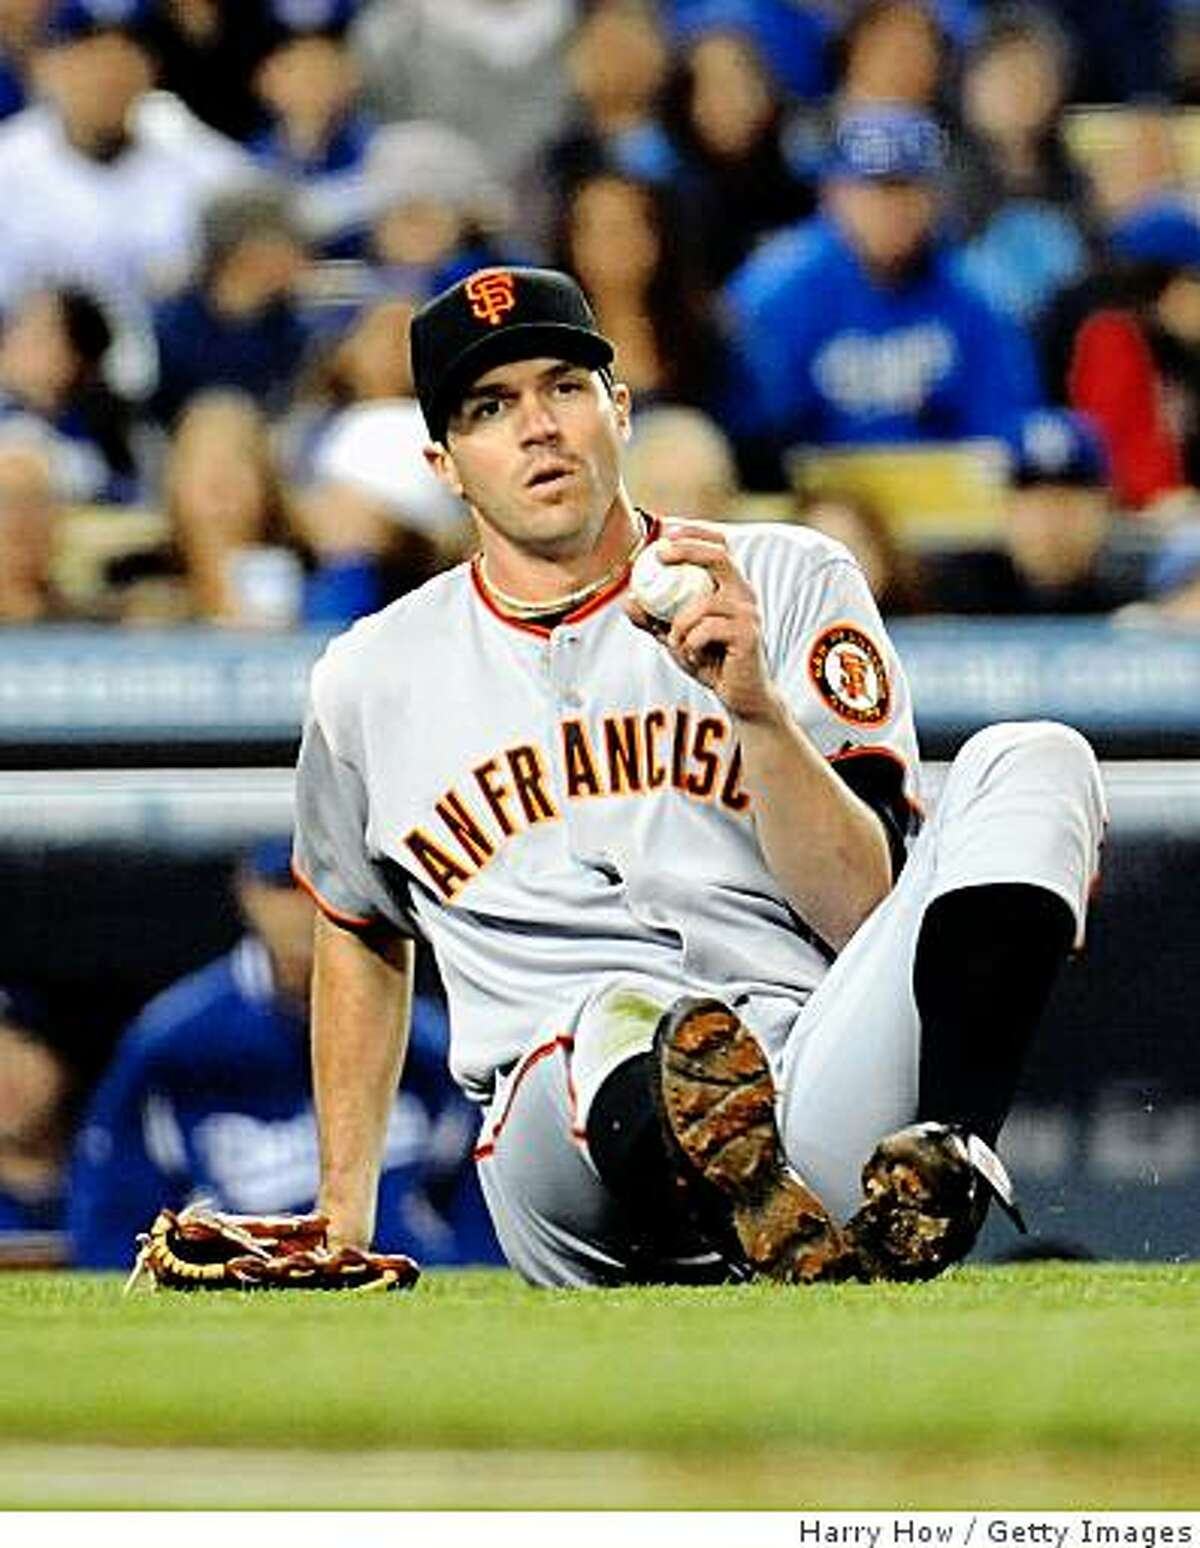 LOS ANGELES, CA - APRIL 16: Barry Zito #75 of the San Francisco Giants fields a foul ground ball against the Los Angeles Dodgers during the second inning at Dodger Stadium on April 16, 2009 in Los Angeles, California. (Photo by Harry How/Getty Images)